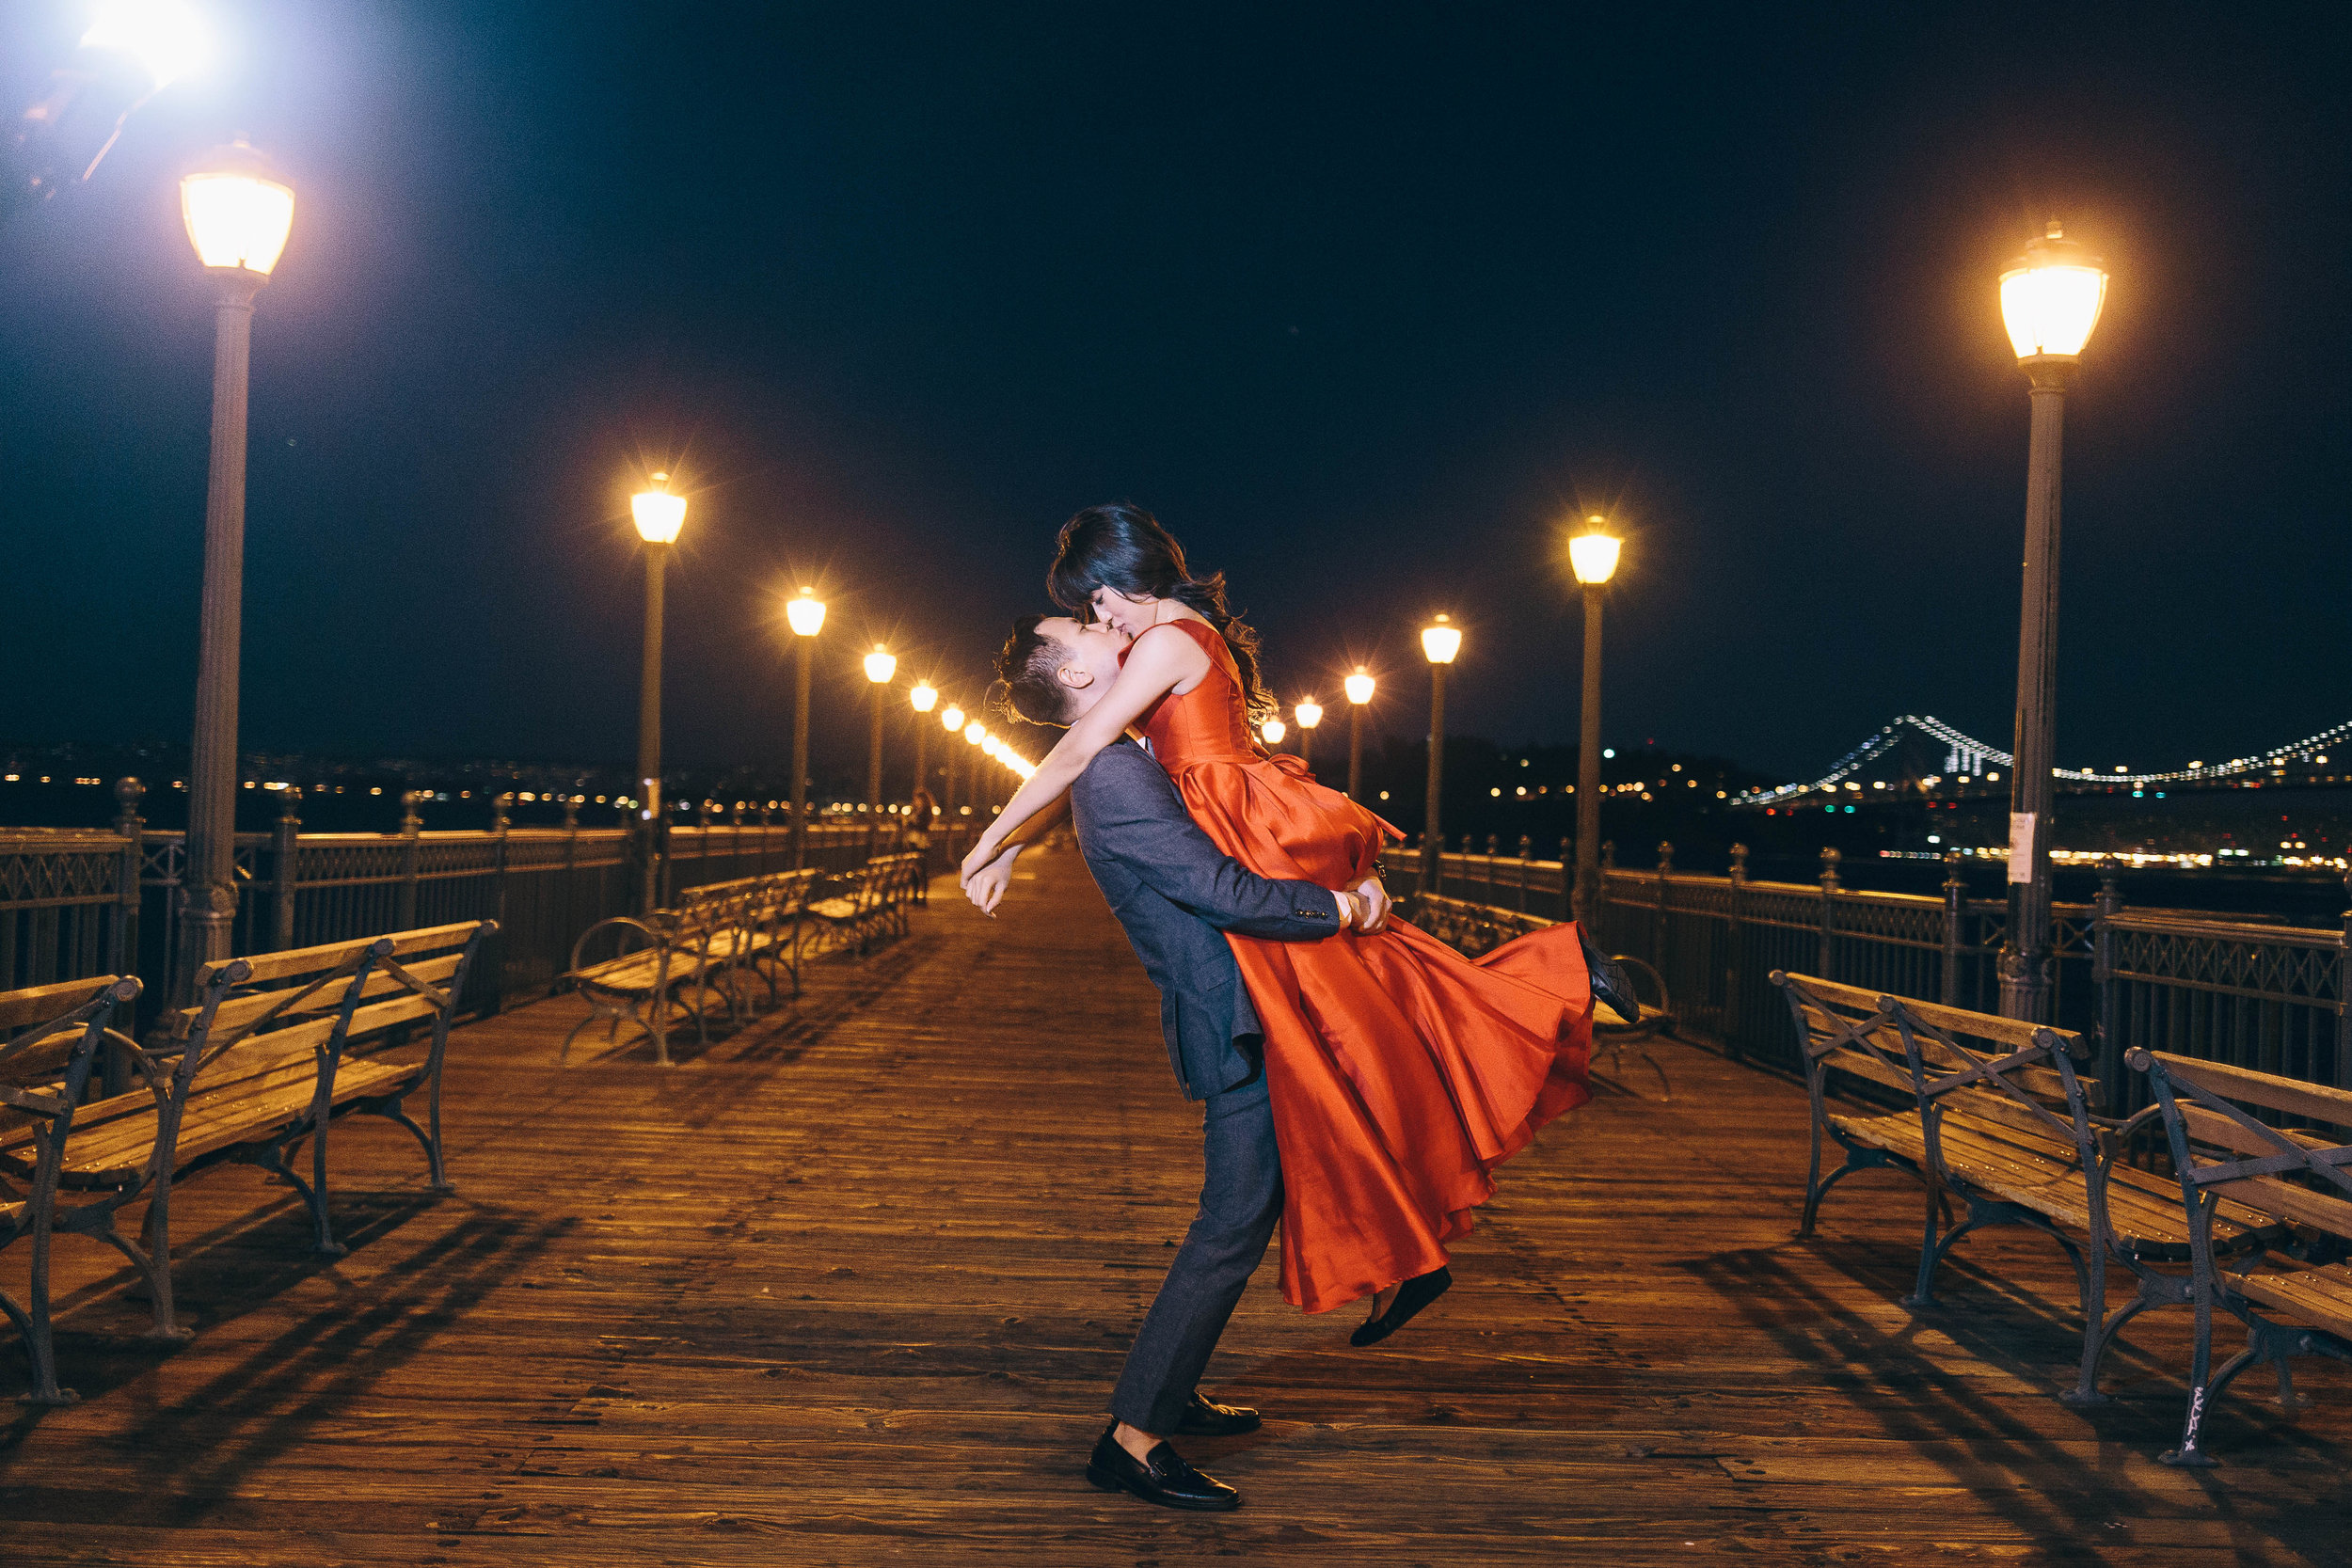 Pre-Wedding Photos in San Francisco by JBJ Pictures Pre-Wedding Photographer, Engagement Session and Wedding Photography in Napa, Sonoma, SF Bay Area (41).jpg